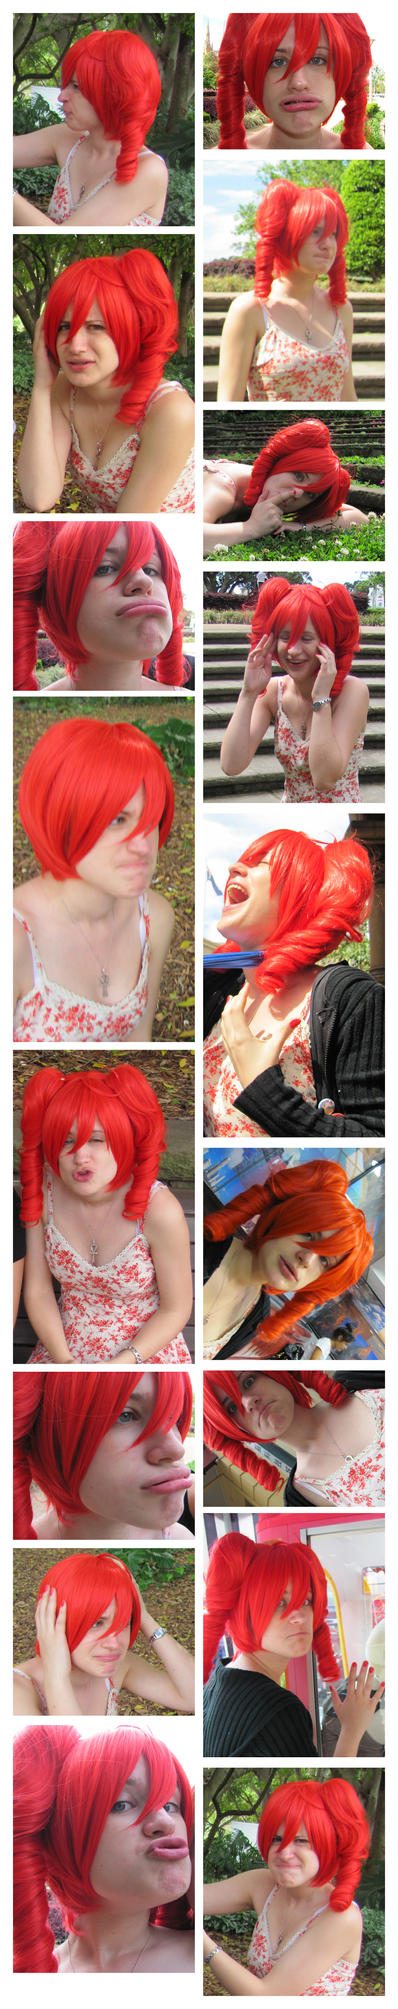 The Many Lovely Faces of Teto by darkgothcrowgirl